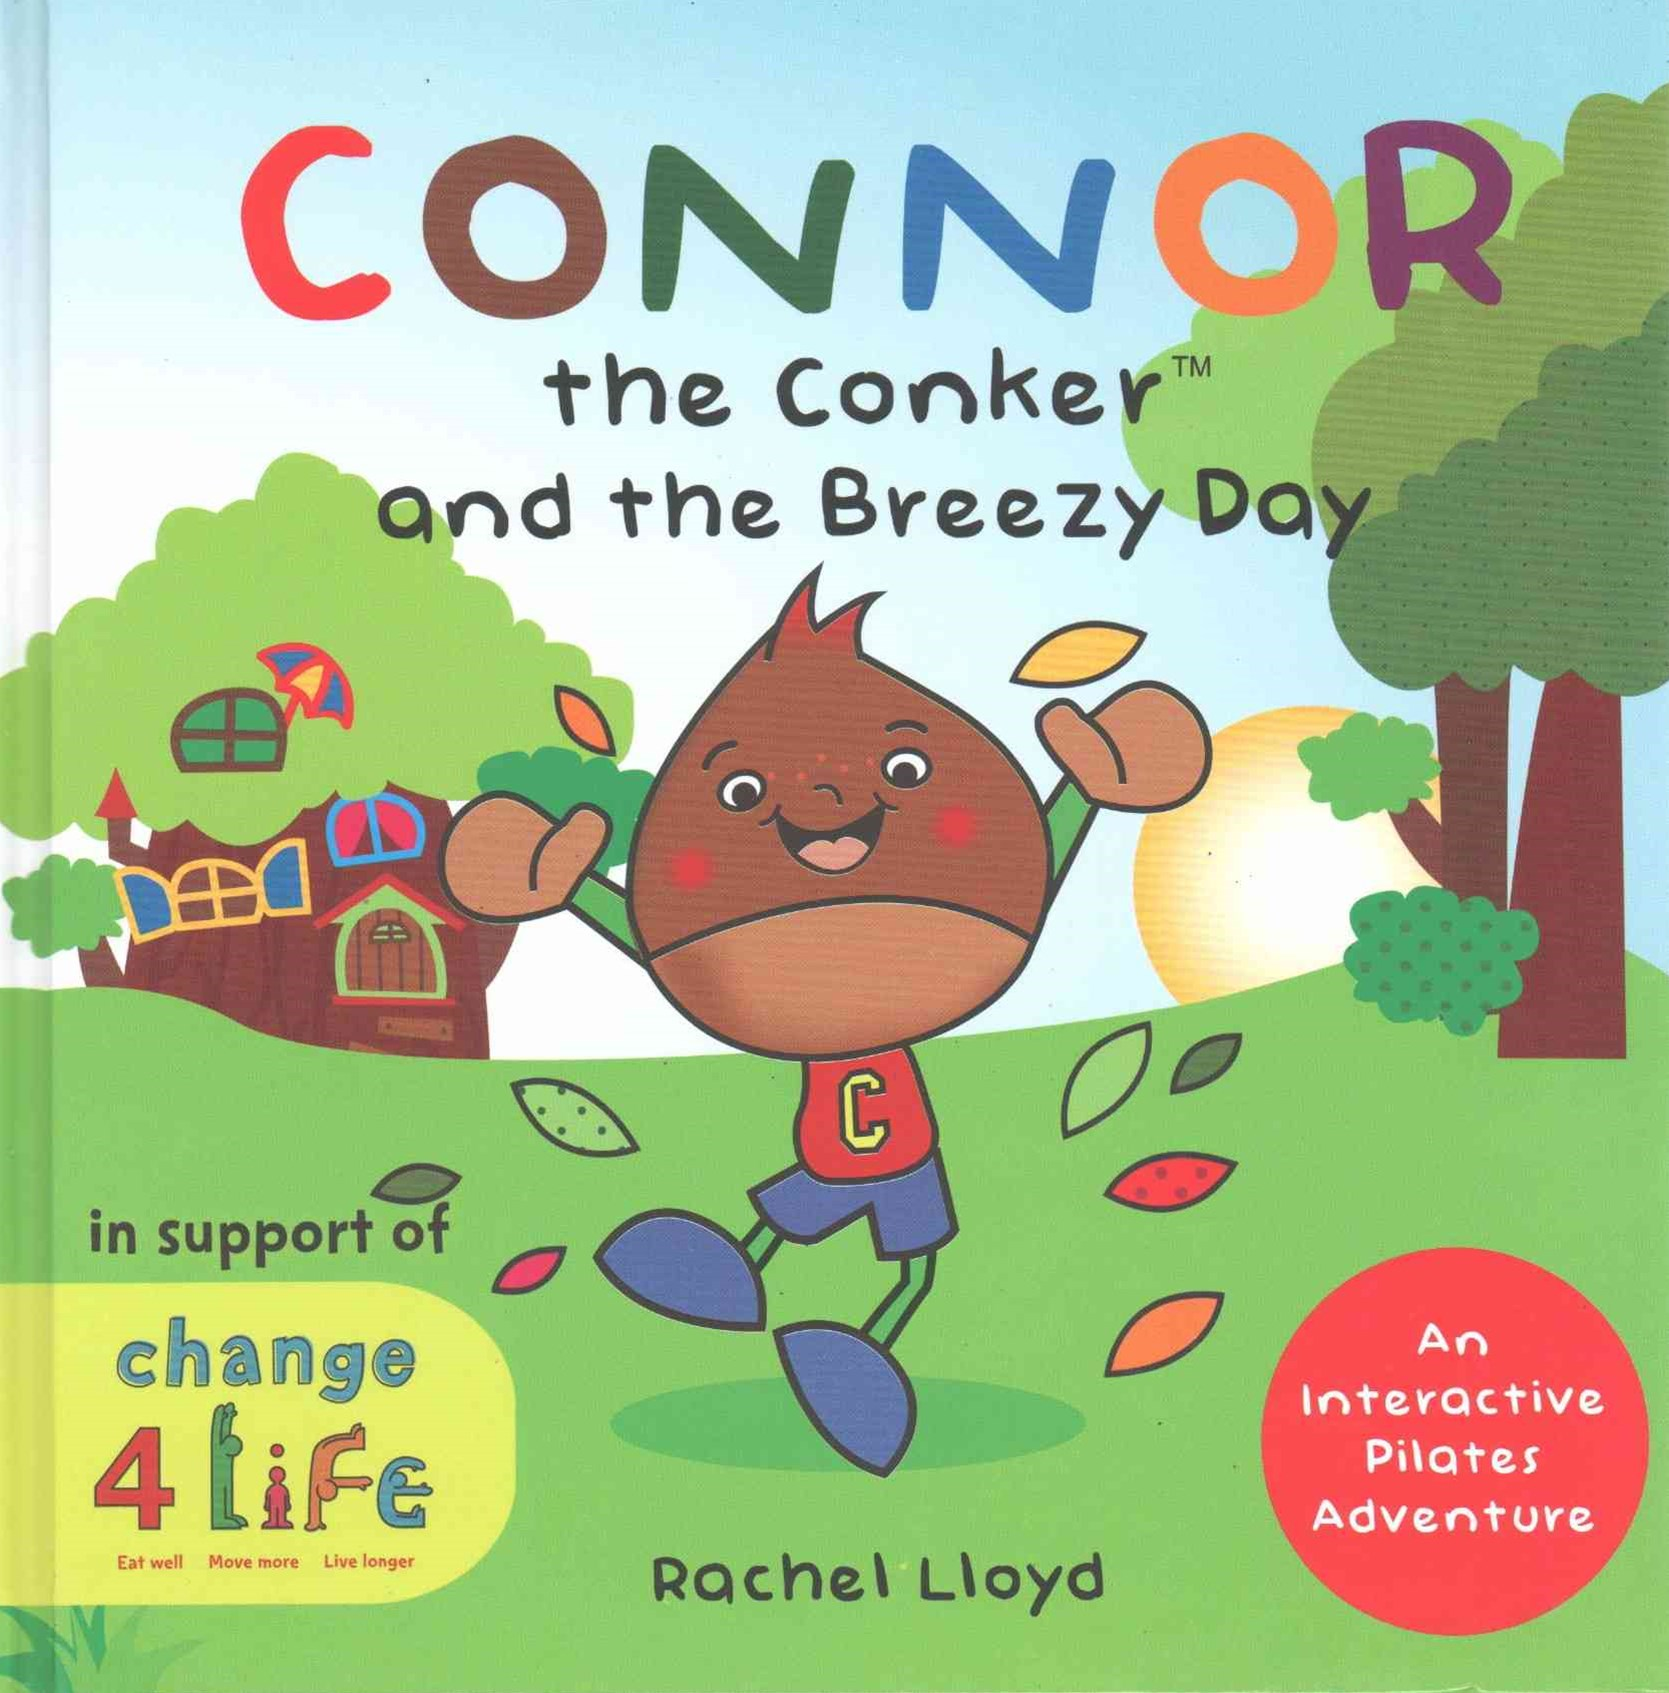 Connor the Conker and the Breezy Day